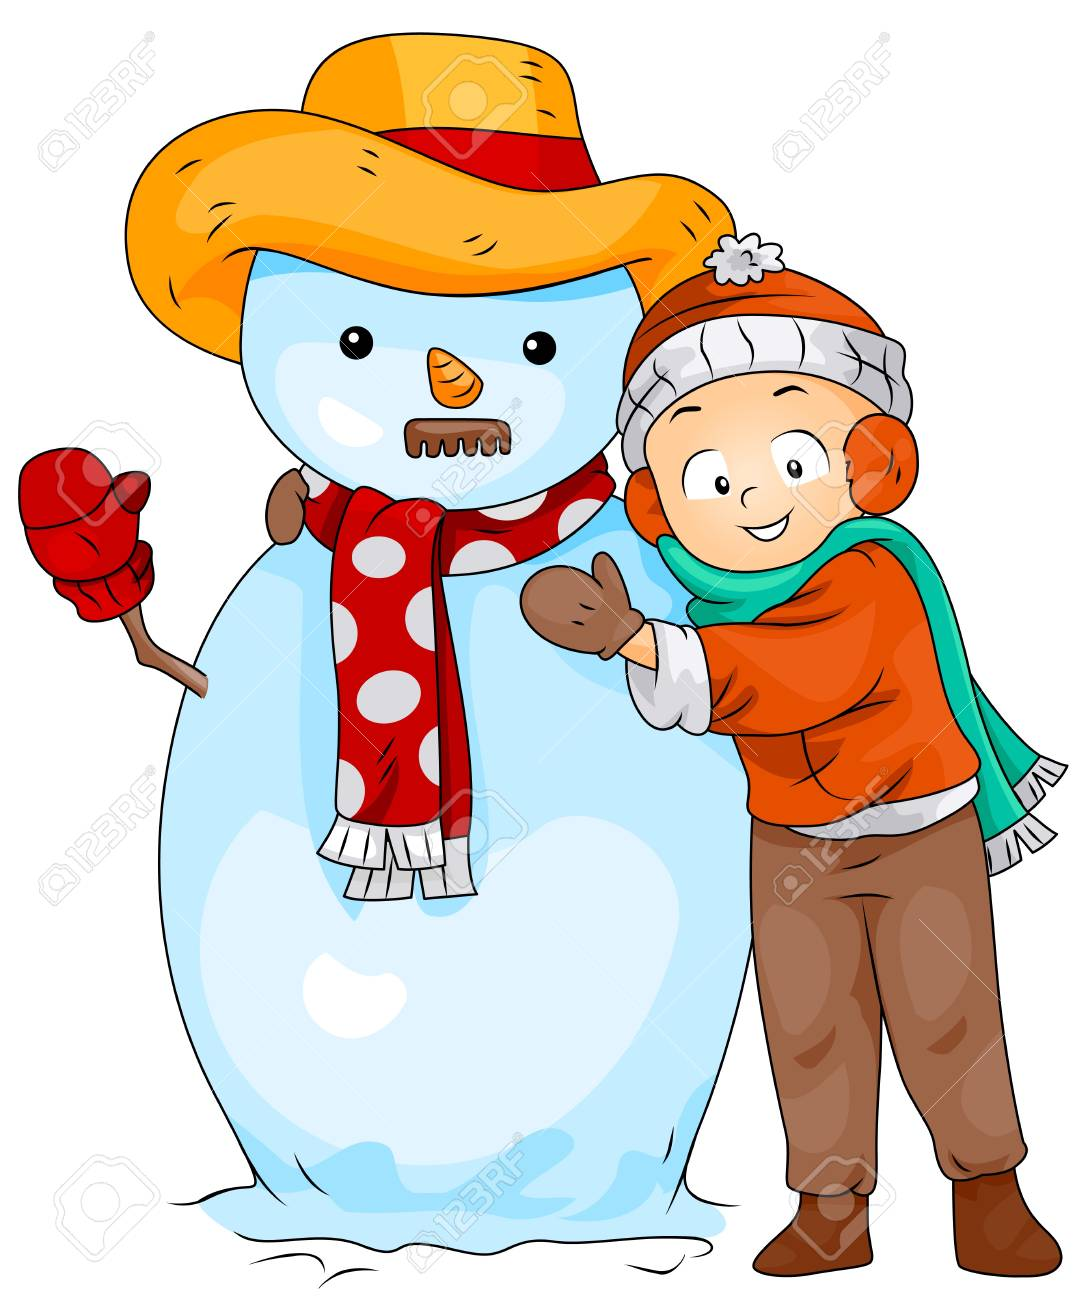 Illustration of a Little Boy Posing Next to a Snowman Stock Photo - 8360911